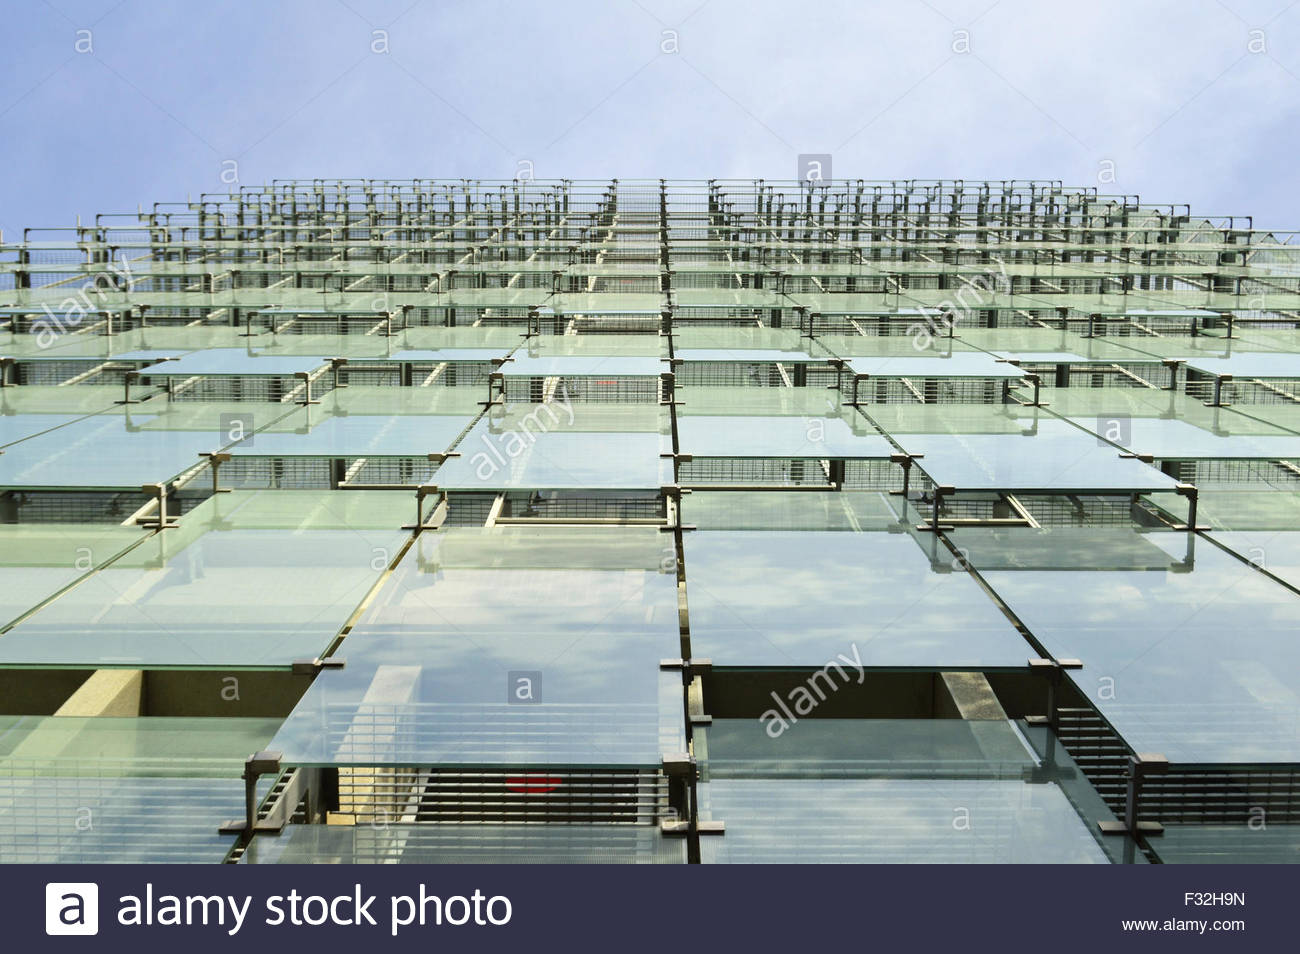 glass facade design office building. Modern Office Building Glass Facade Cladding Low Angle Viewpoint, Barcelona Spain Europe - Stock Image Design N